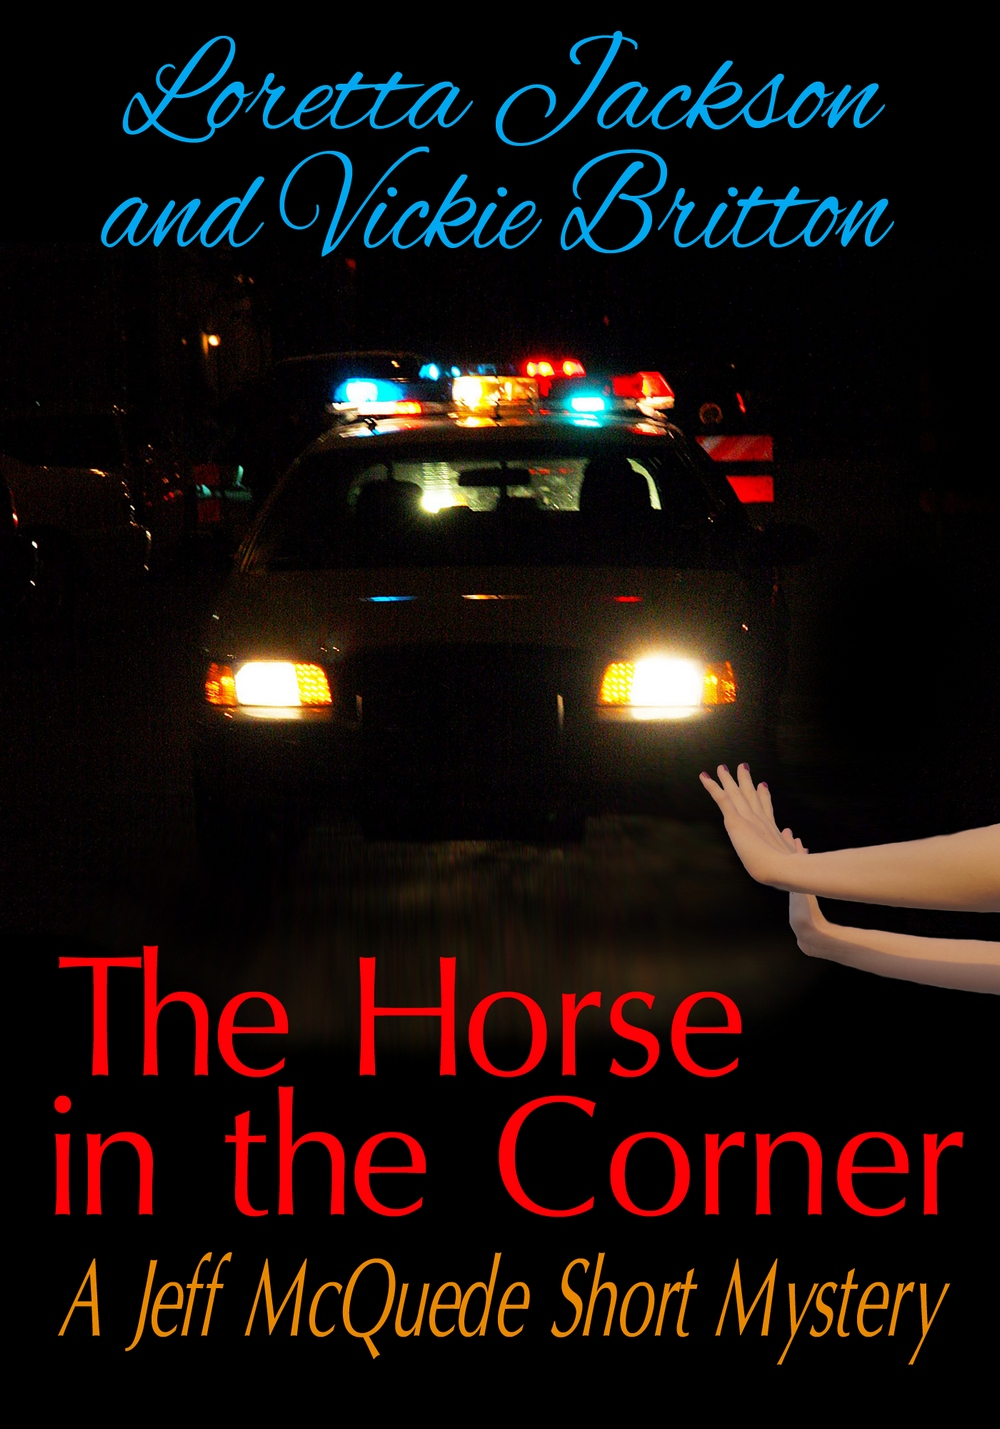 99c  READ A JEFF MCQUEDE  SHORT STORY --THE HORSE IN THE CORNER